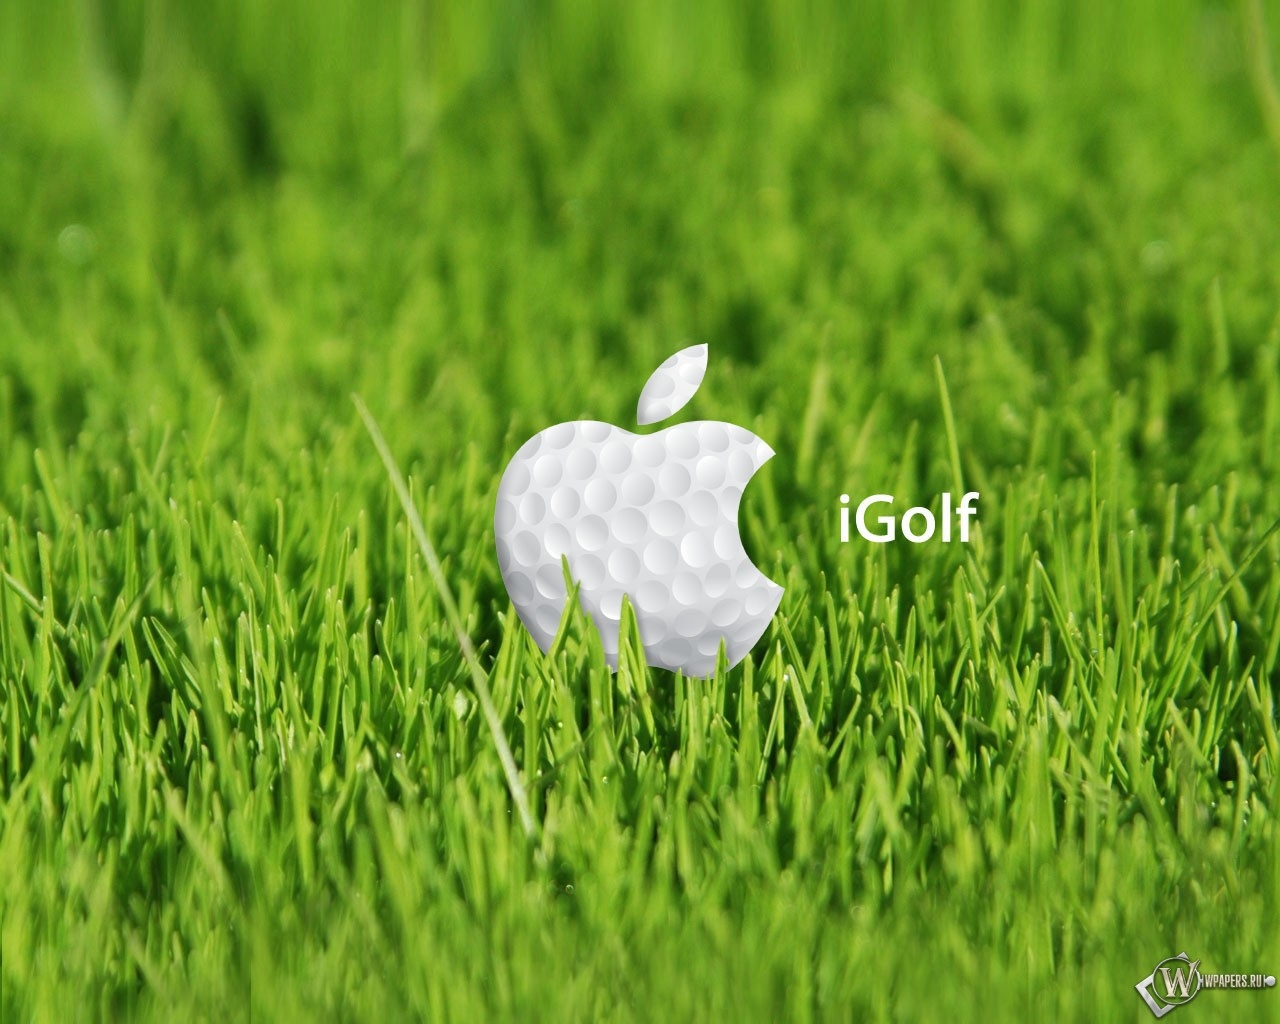 Apple igolf 1280x1024